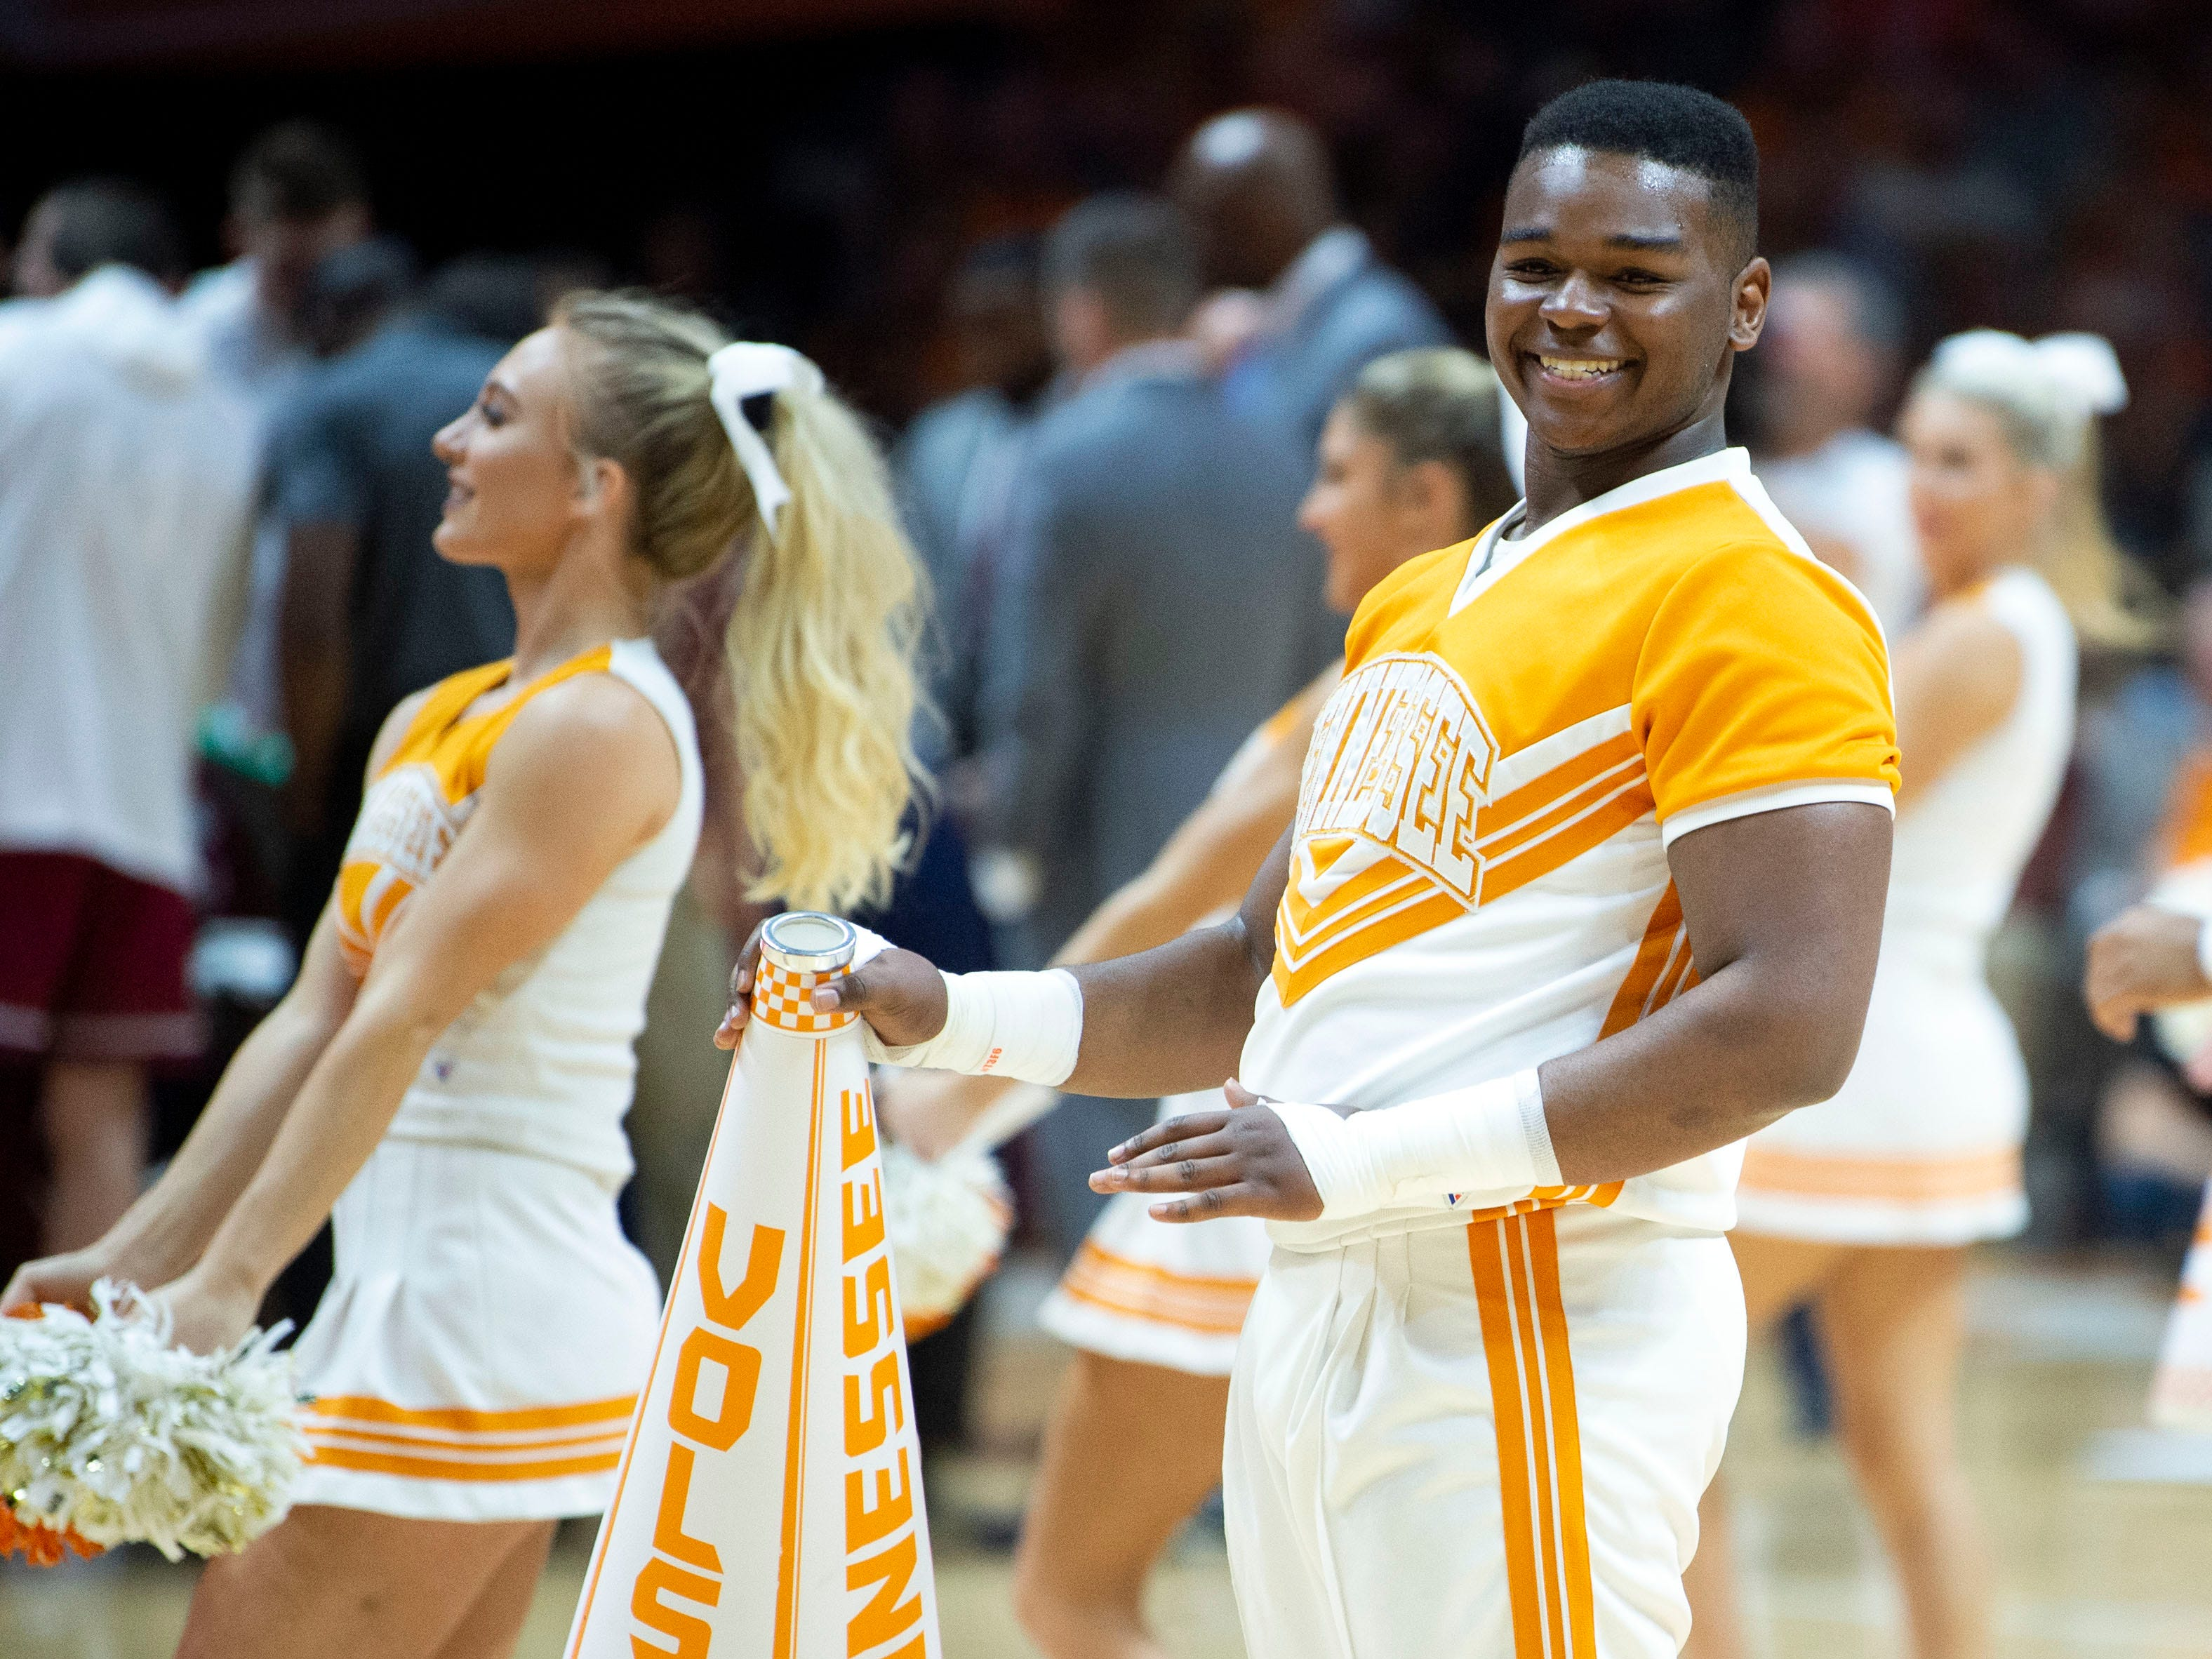 Tennessee cheerleaders entertain the sold-out crowd during the game against South Carolina on Wednesday, February 13, 2019.